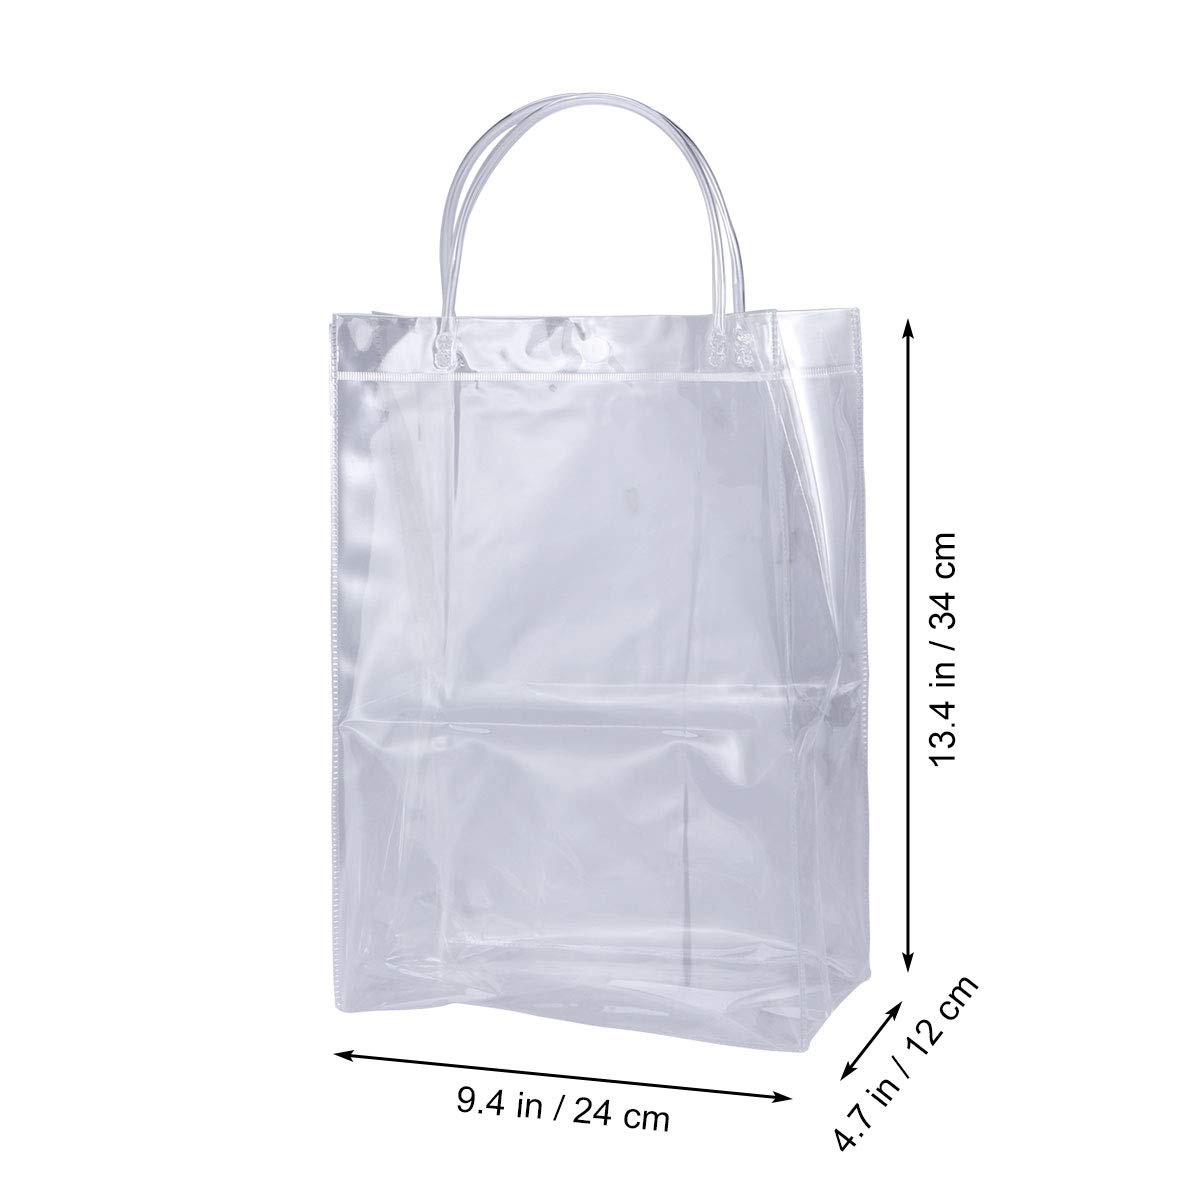 Transparent Plastic PVC Ice Wine Bag Portable Tote Bag Gift Bag Birthday Party Decoration Wedding Favor Vertical Style